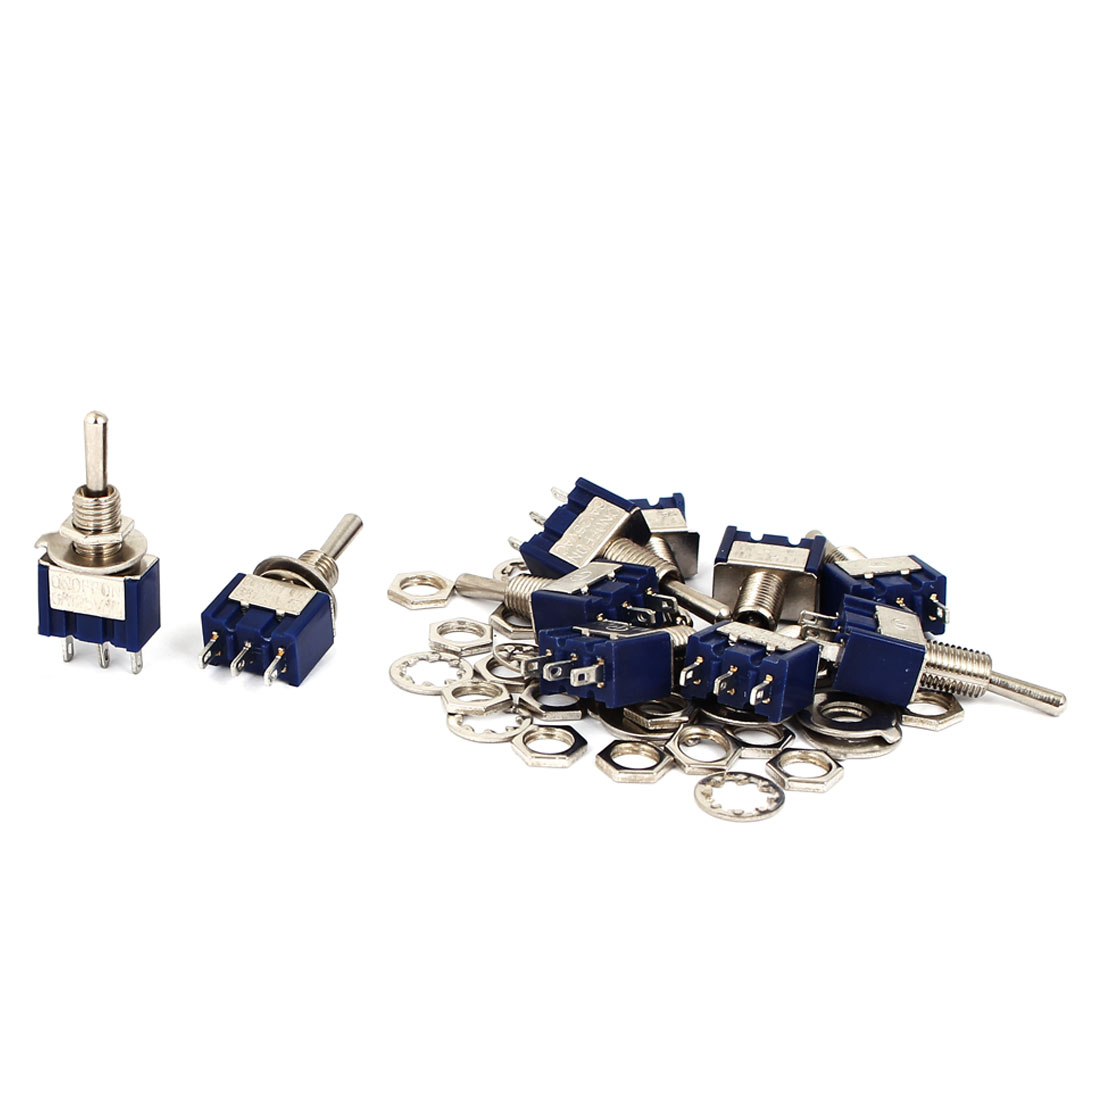 10Pcs AC 125V 6A SPDT ON-OFF-ON 3 Position Latching Miniature Toggle Switch Blue